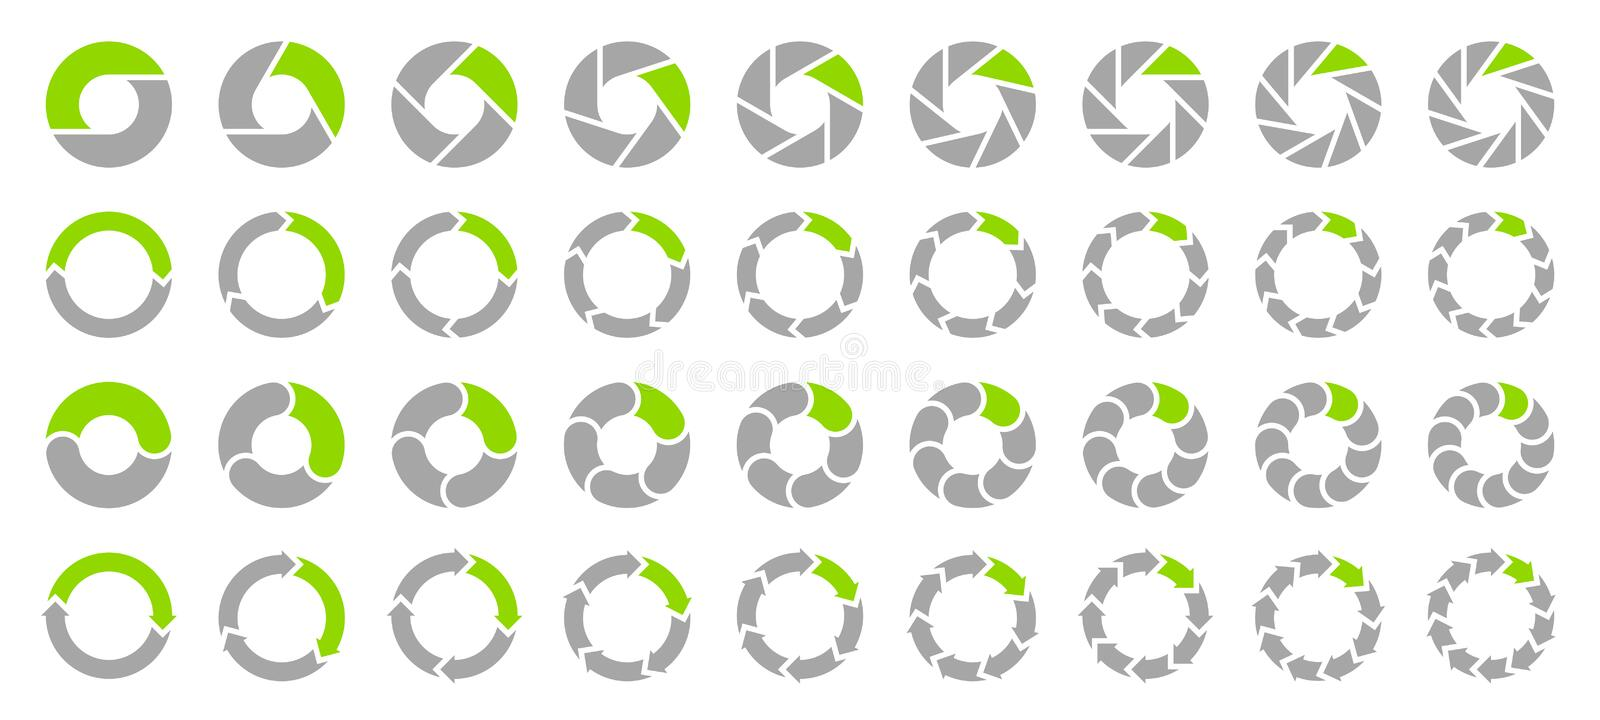 Set Pie Charts Arrows Gray And Green stock illustration